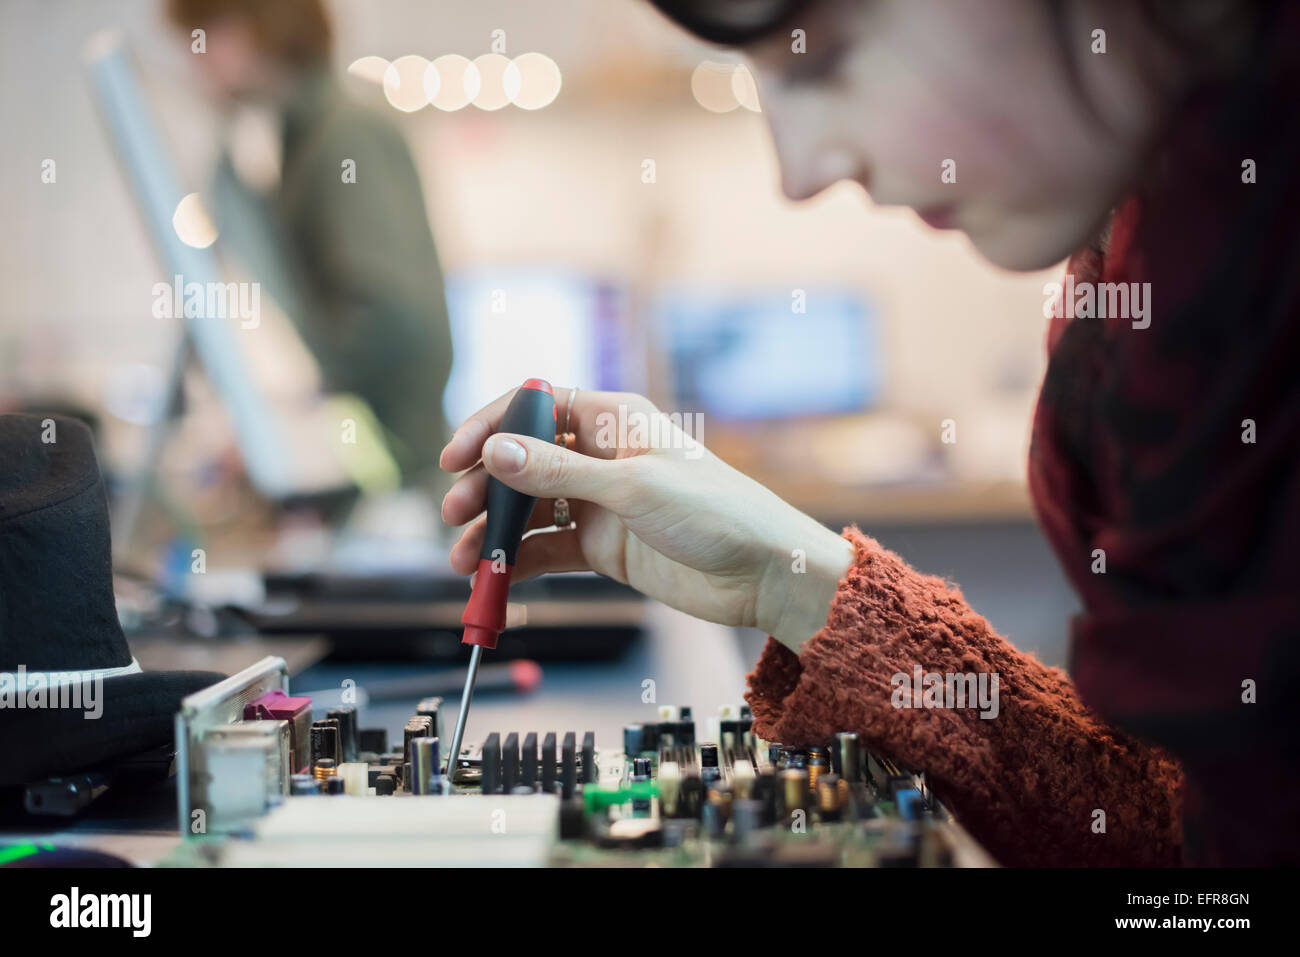 Computer Repair Shop. A woman using an electronic screwdriver tool on a computer circuit board. - Stock Image